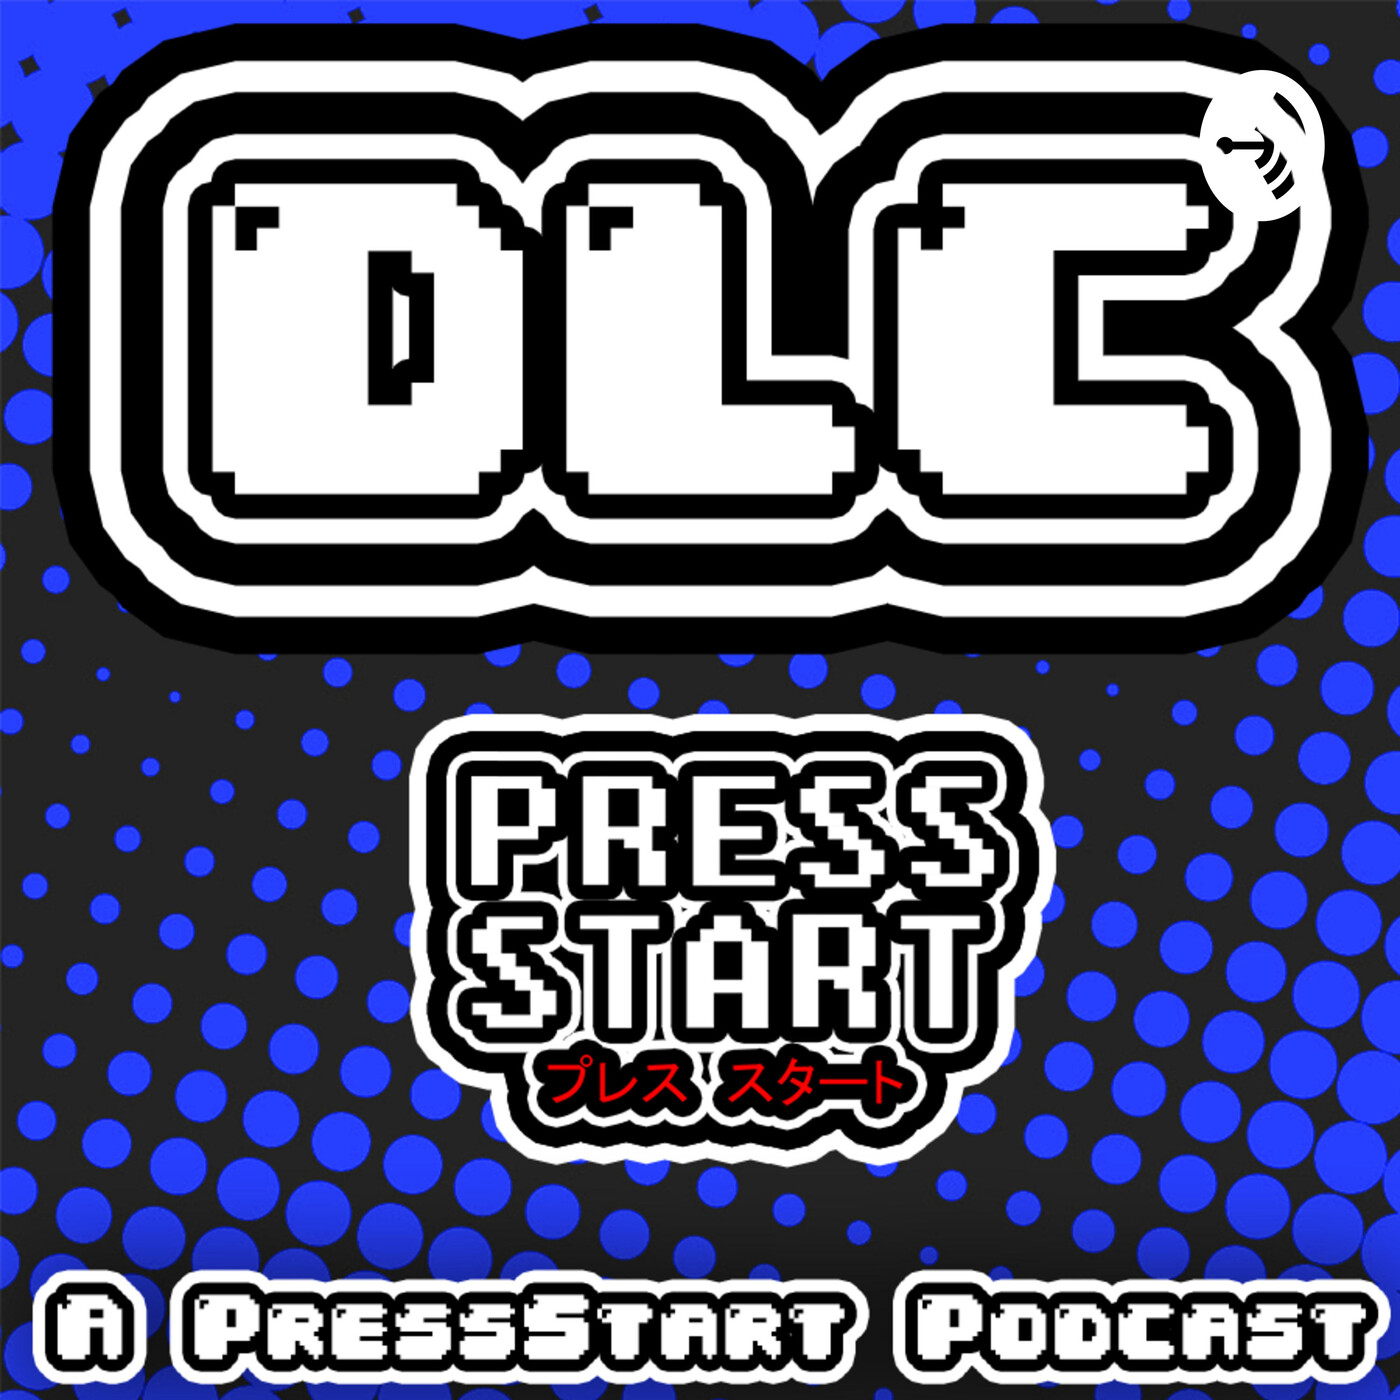 Ep. Piloto - 0000 - DLC Podcast - Press Start